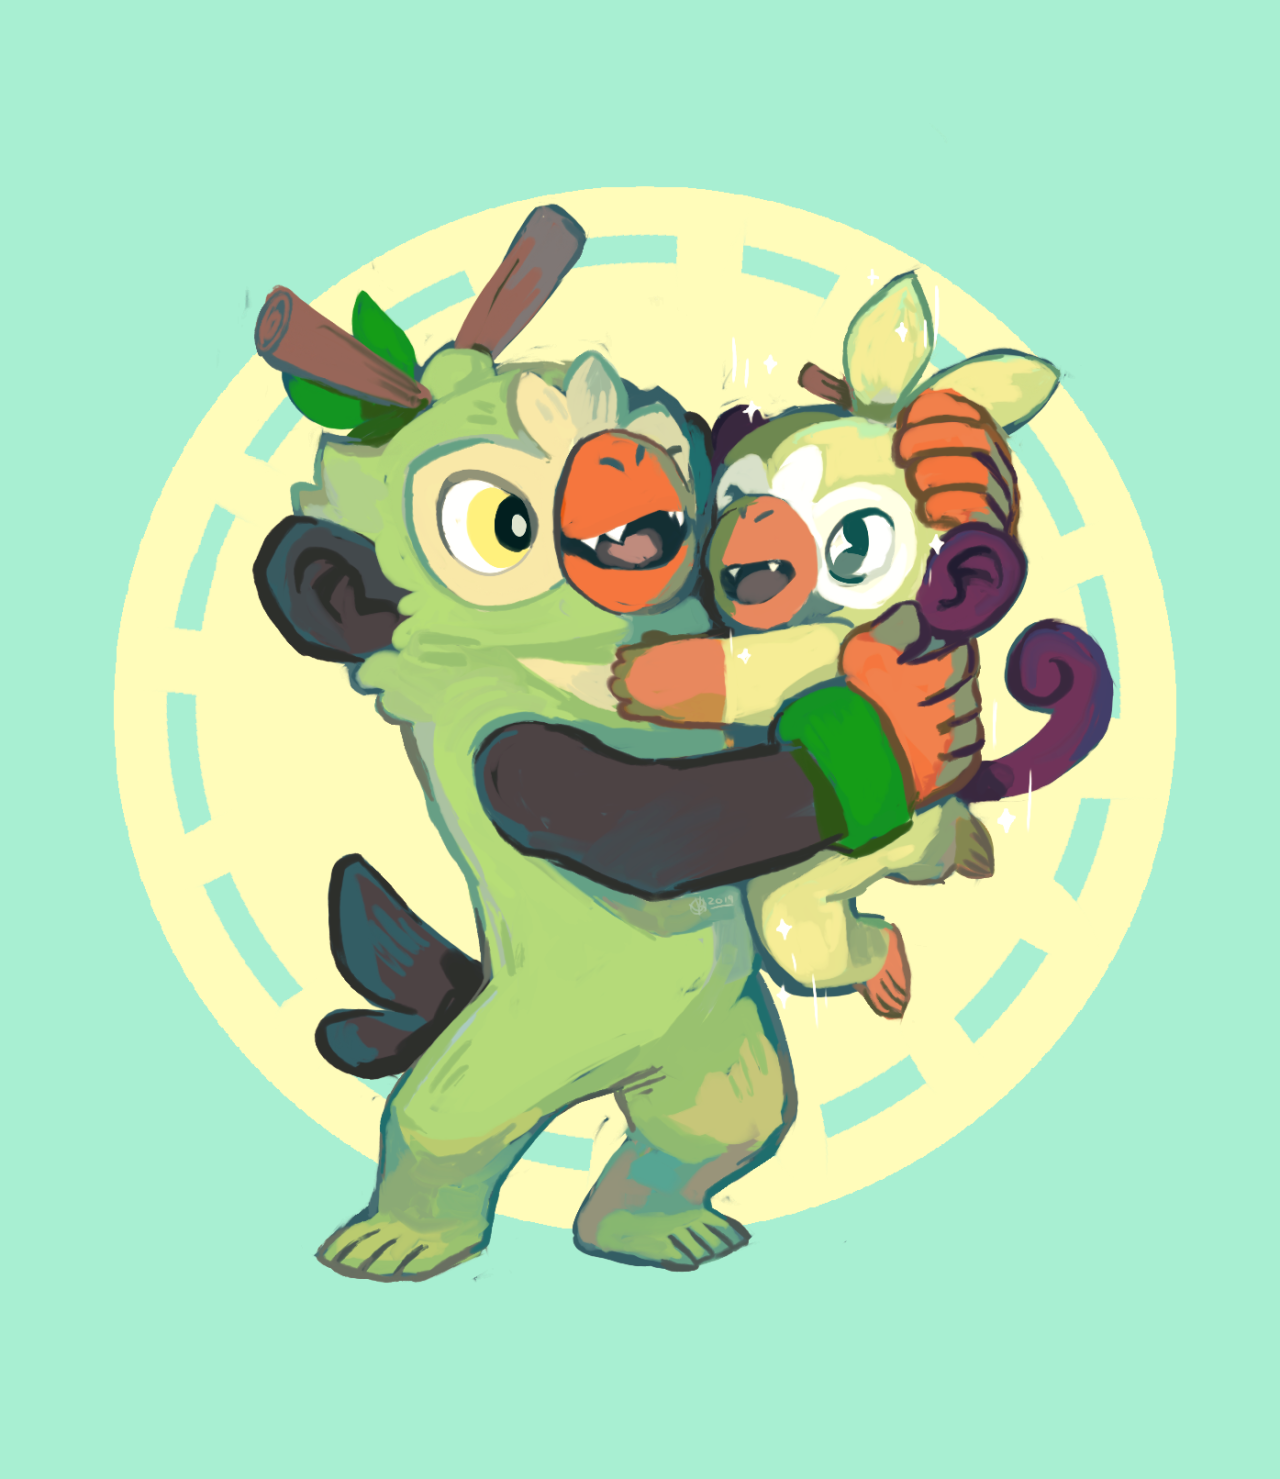 Krithidraws Hi Yall Im Still Alive Also I Hatched A Shiny Grookey The Other Day And My Thwackey Couldnt Be Prouder Of His In 2020 Pokemon Mario Characters Art Blog This is for a ultra shiny starter grookey with perfect stats(6iv) and the best moves for pokemon sword and shield, it will be at level 1. krithidraws hi yall im still alive